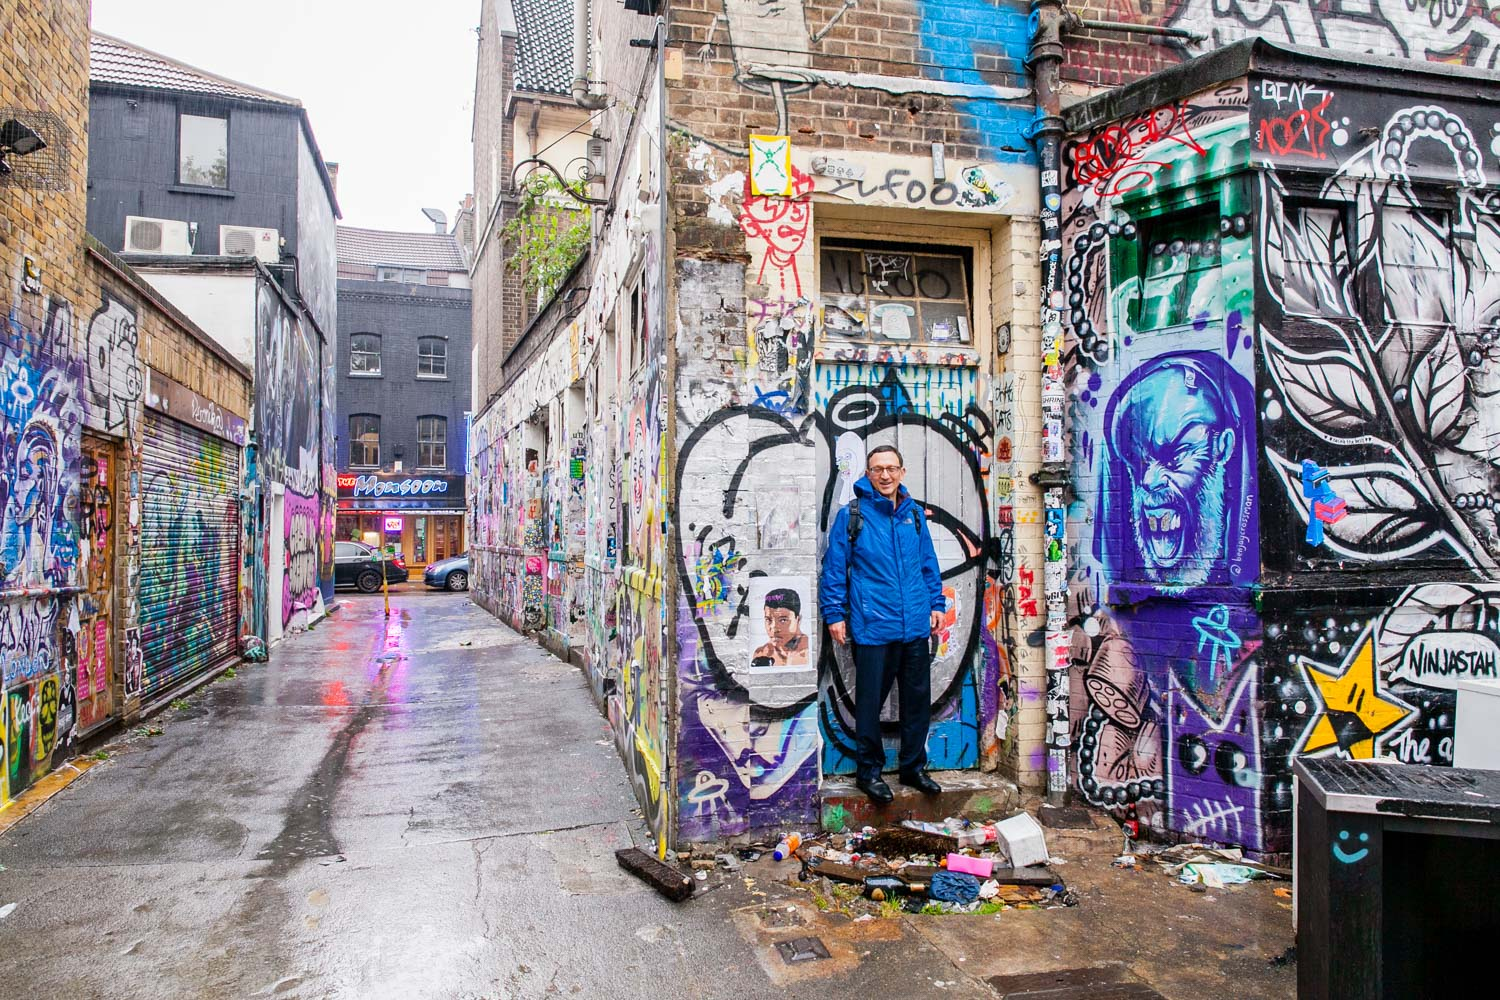 Venture off the beaten track with Mark King and encounter world-class street art in the back-alleys of London's East End.